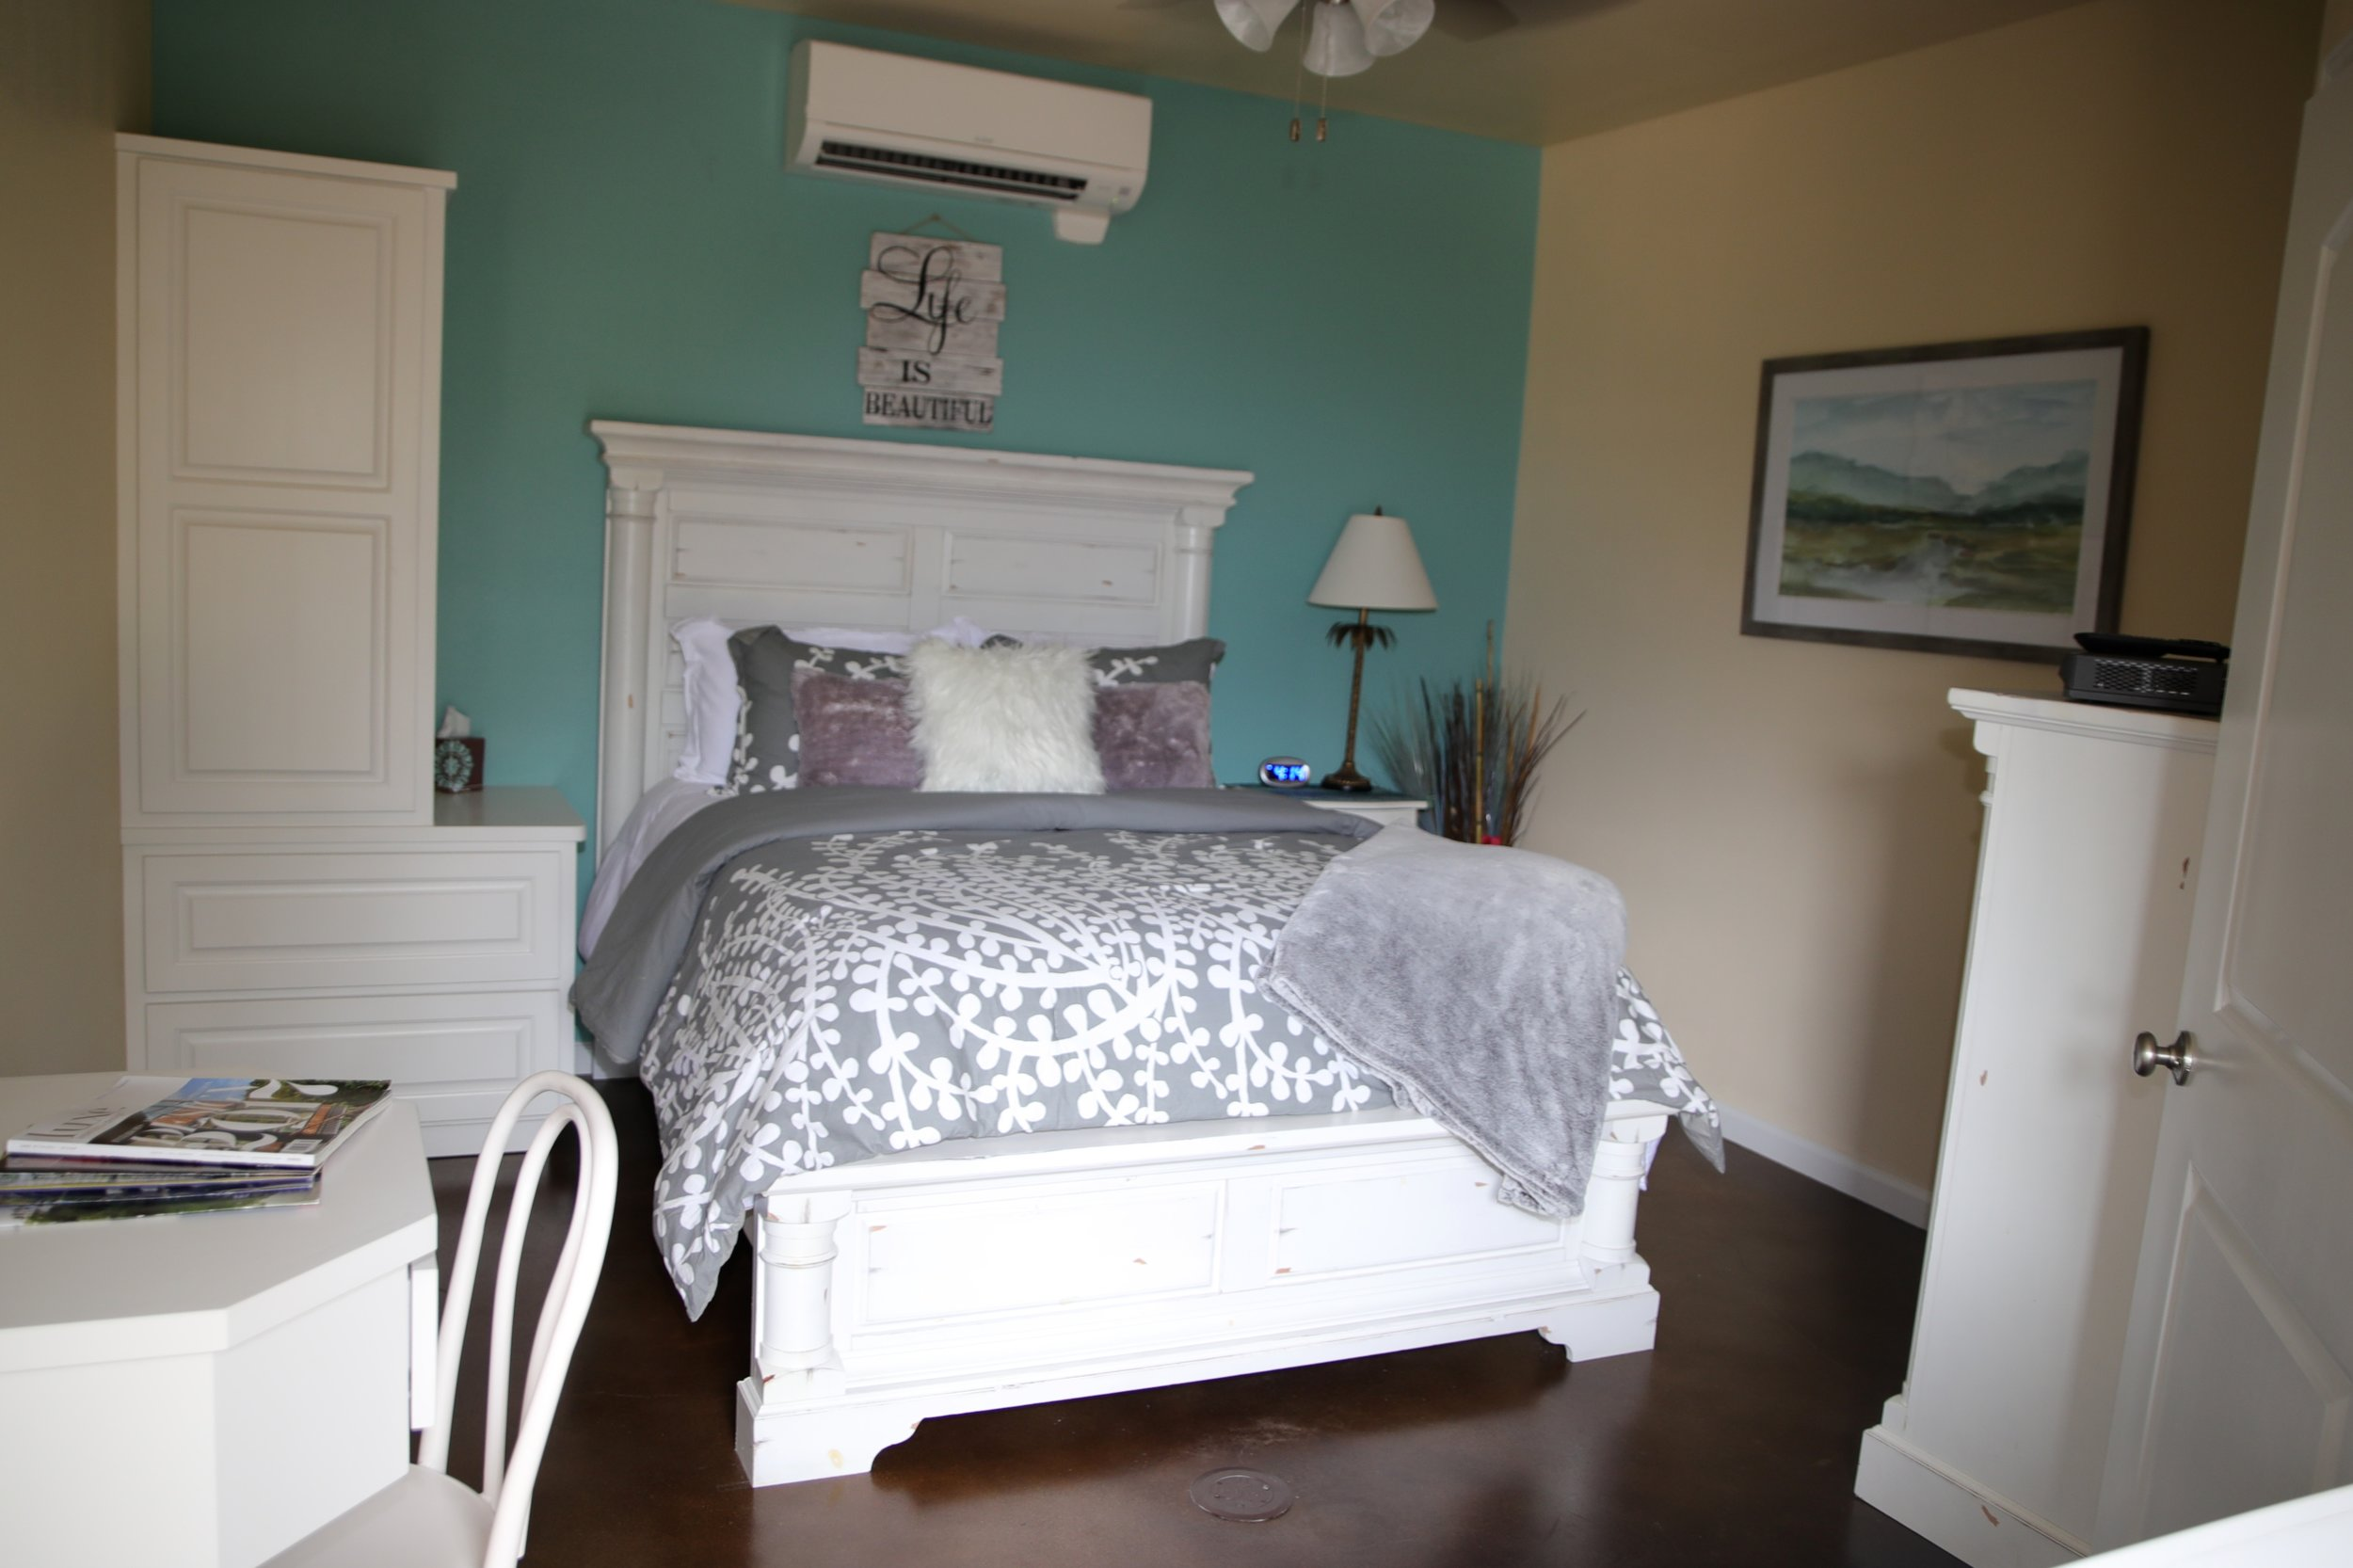 """The La Paz Room - """"La Paz"""" means peace in Spanish. This room can accommodate 2 guests.The La Paz Room includes a plush queen bed with touches of grey and floral whites, private walk-in bathroom with glass shower, mini refrigerator, cable & internet.Pricing Starting At $175 a night"""